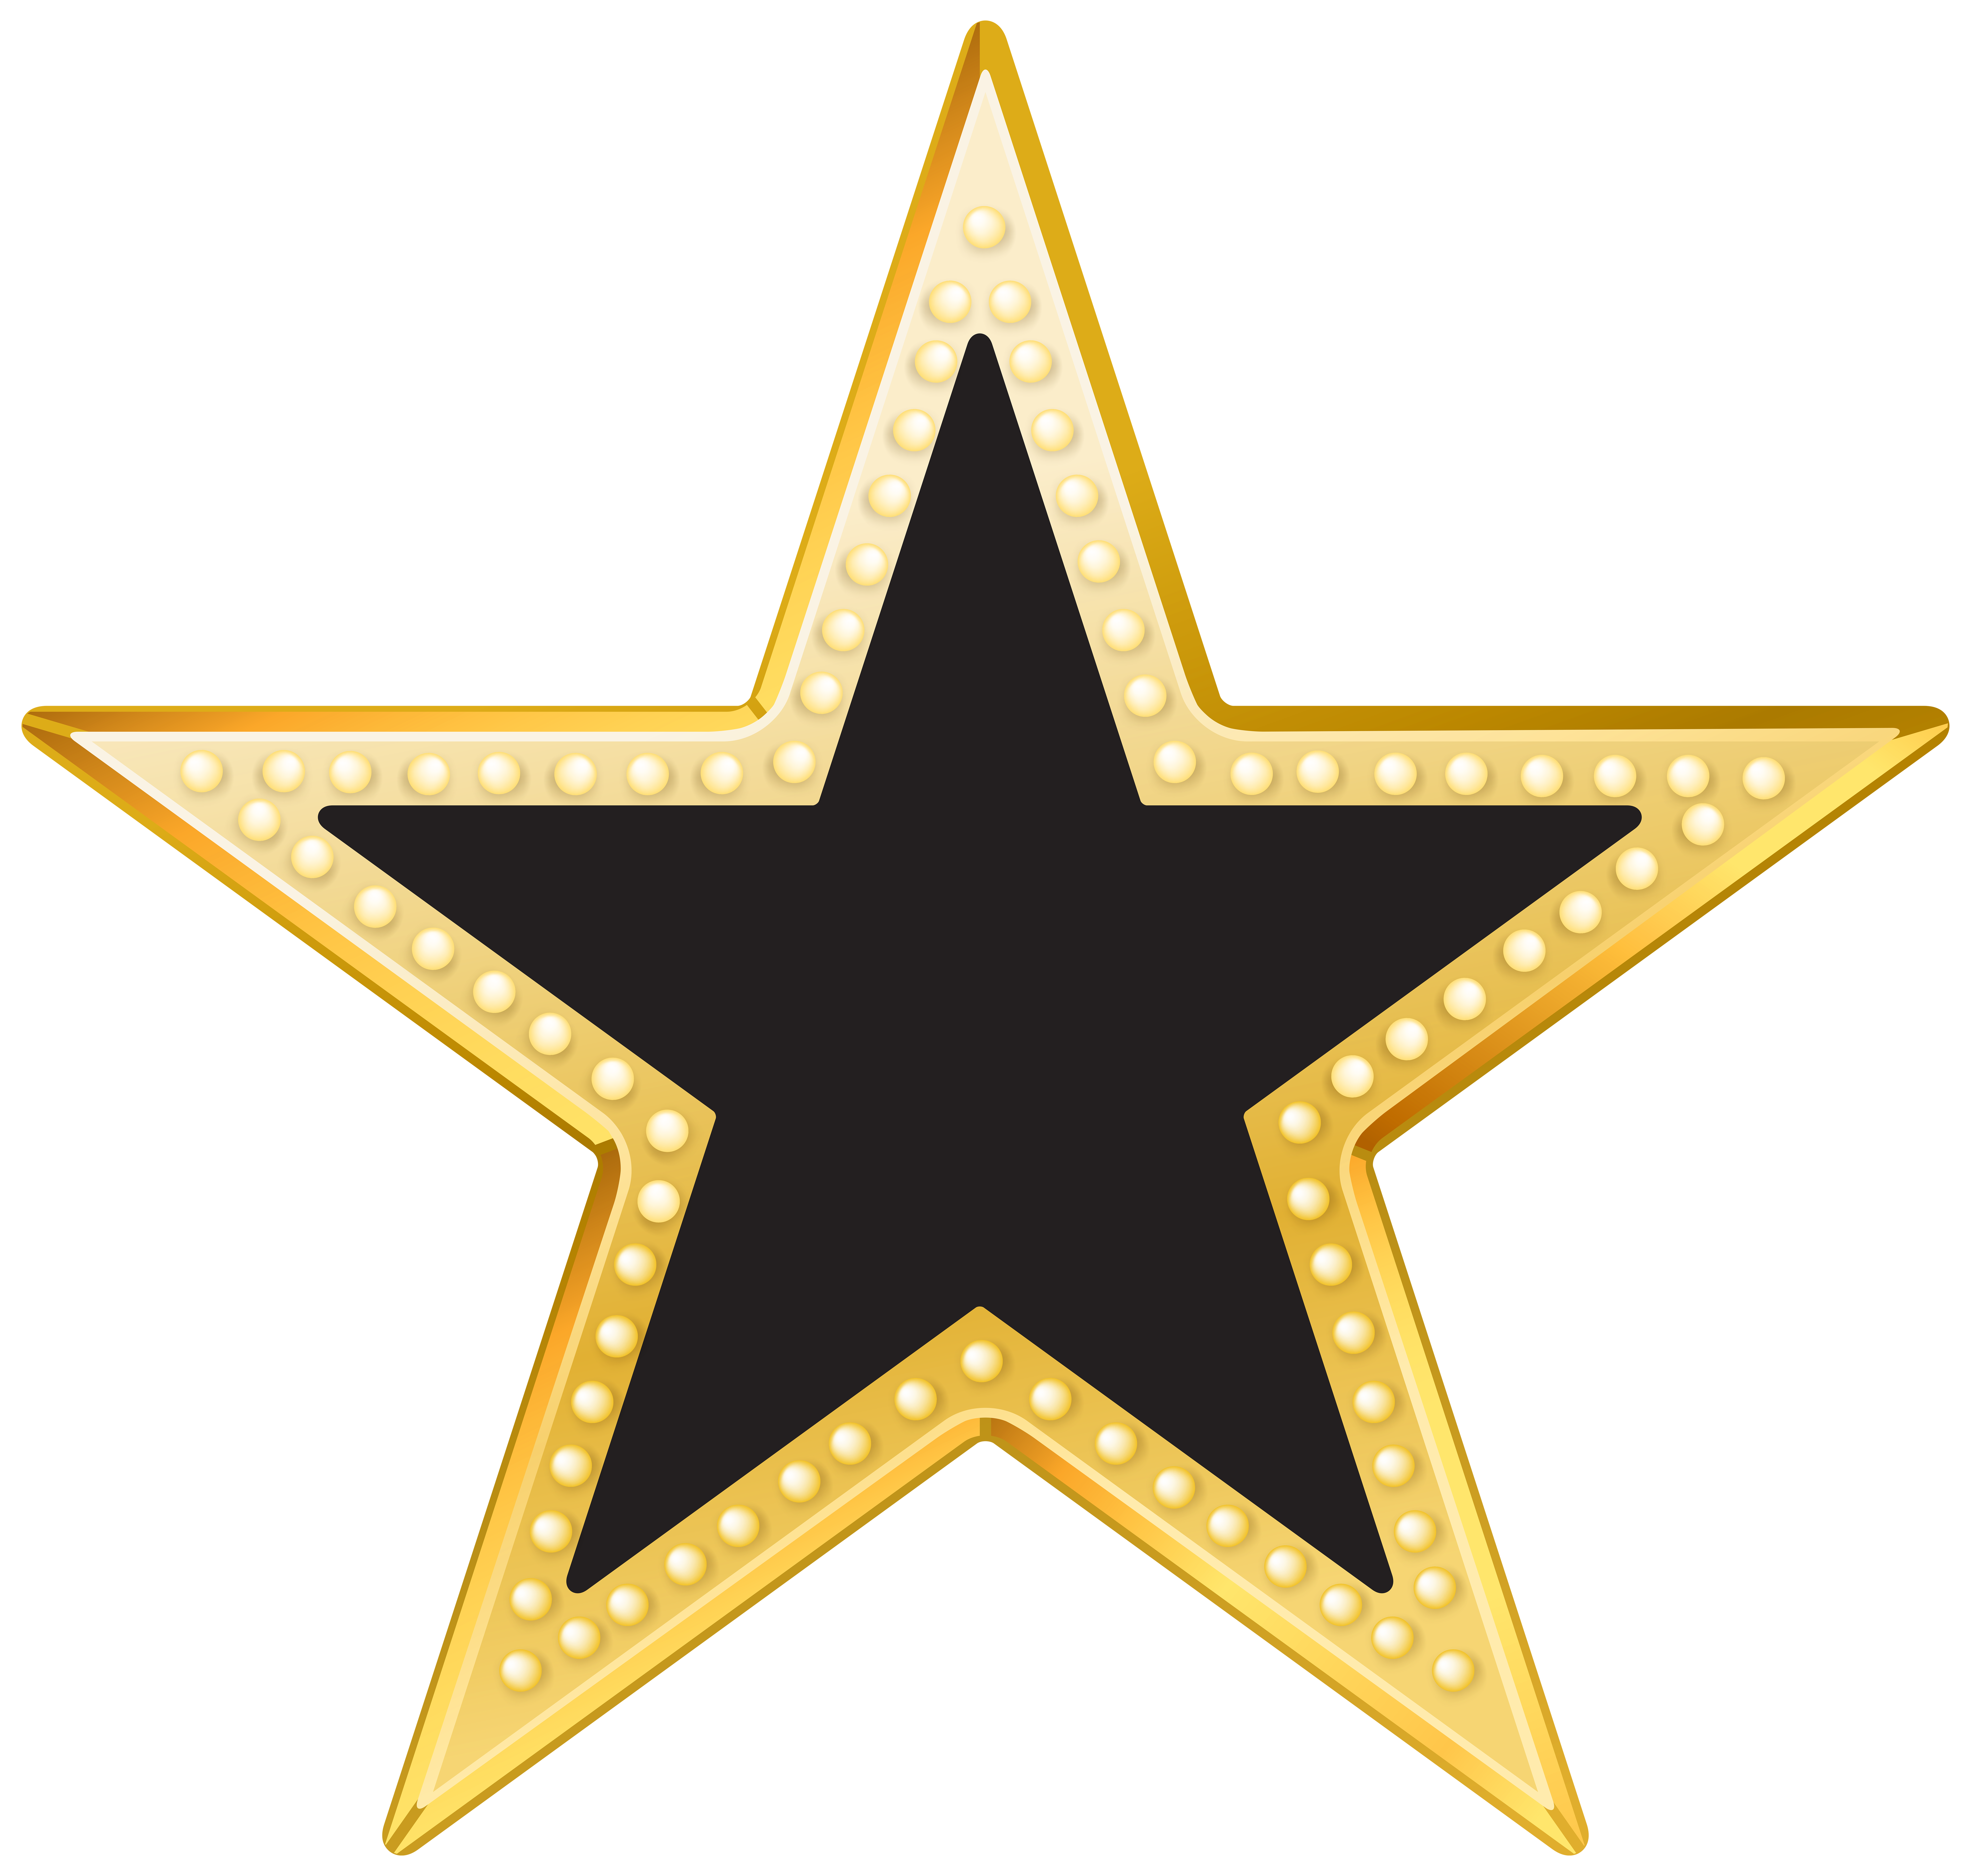 Star png. Gold and black transparent